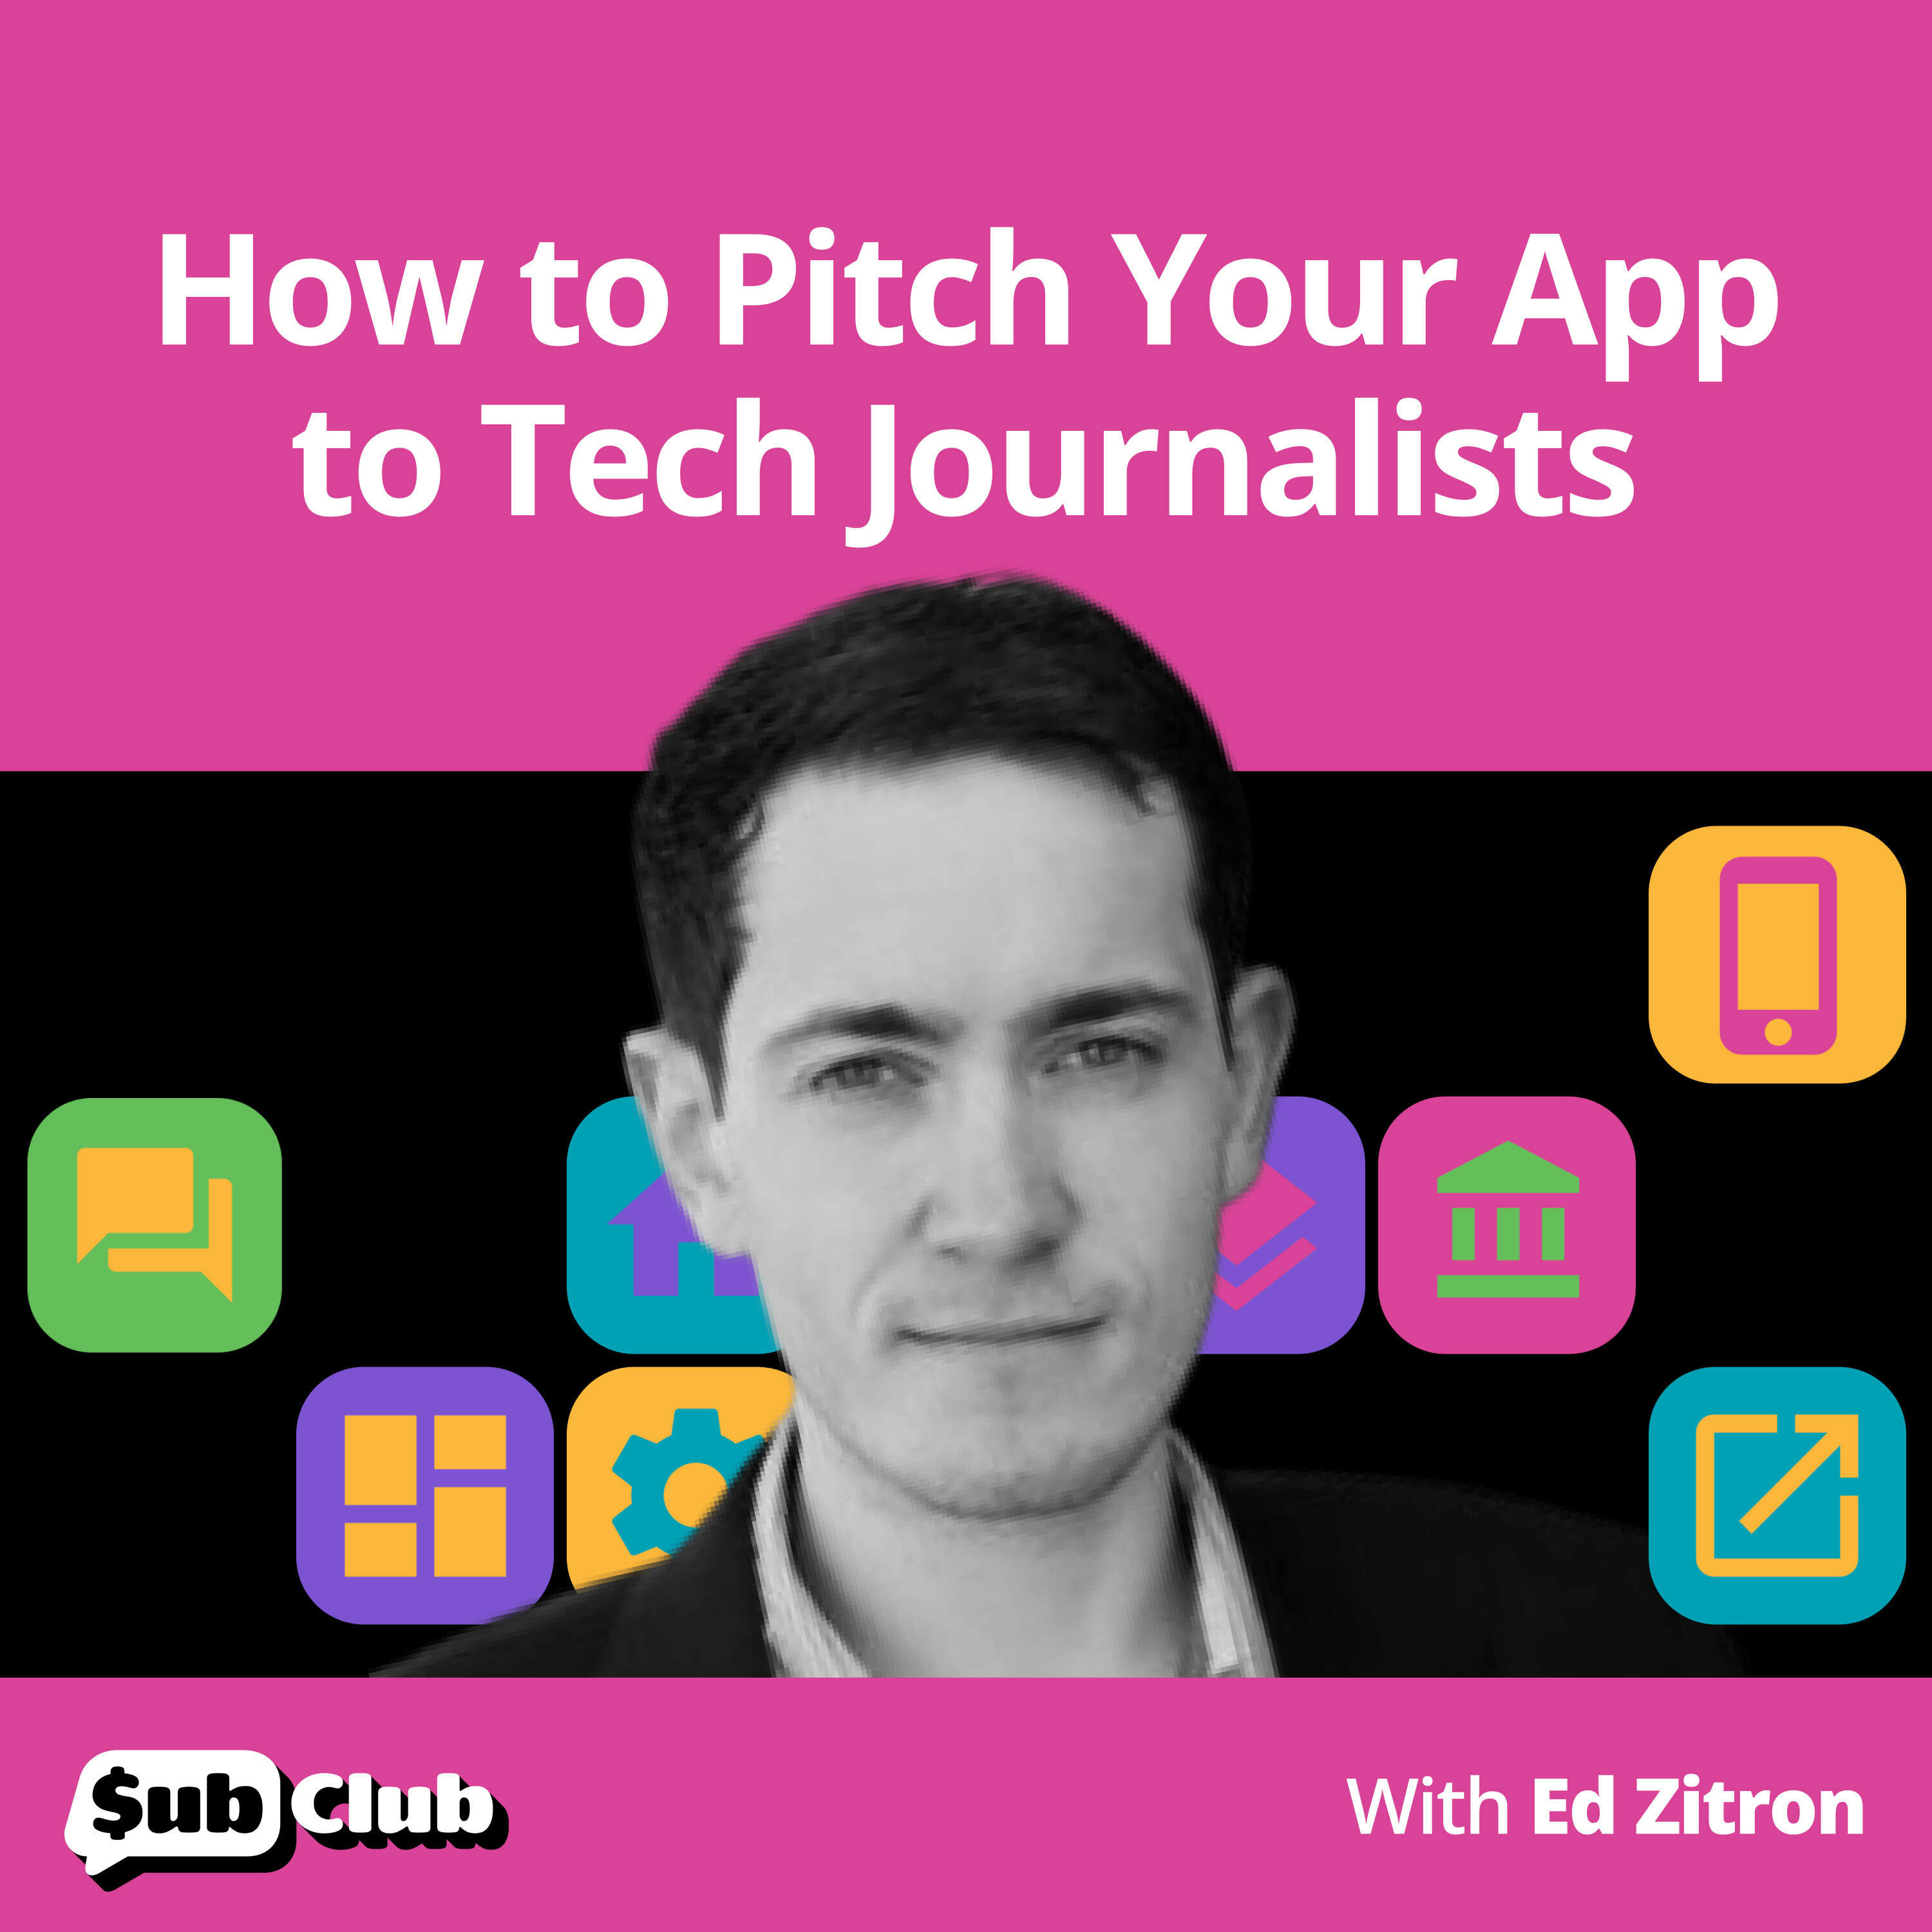 Ed Zitron, EZPR - How to Pitch Your App to Tech Journalists